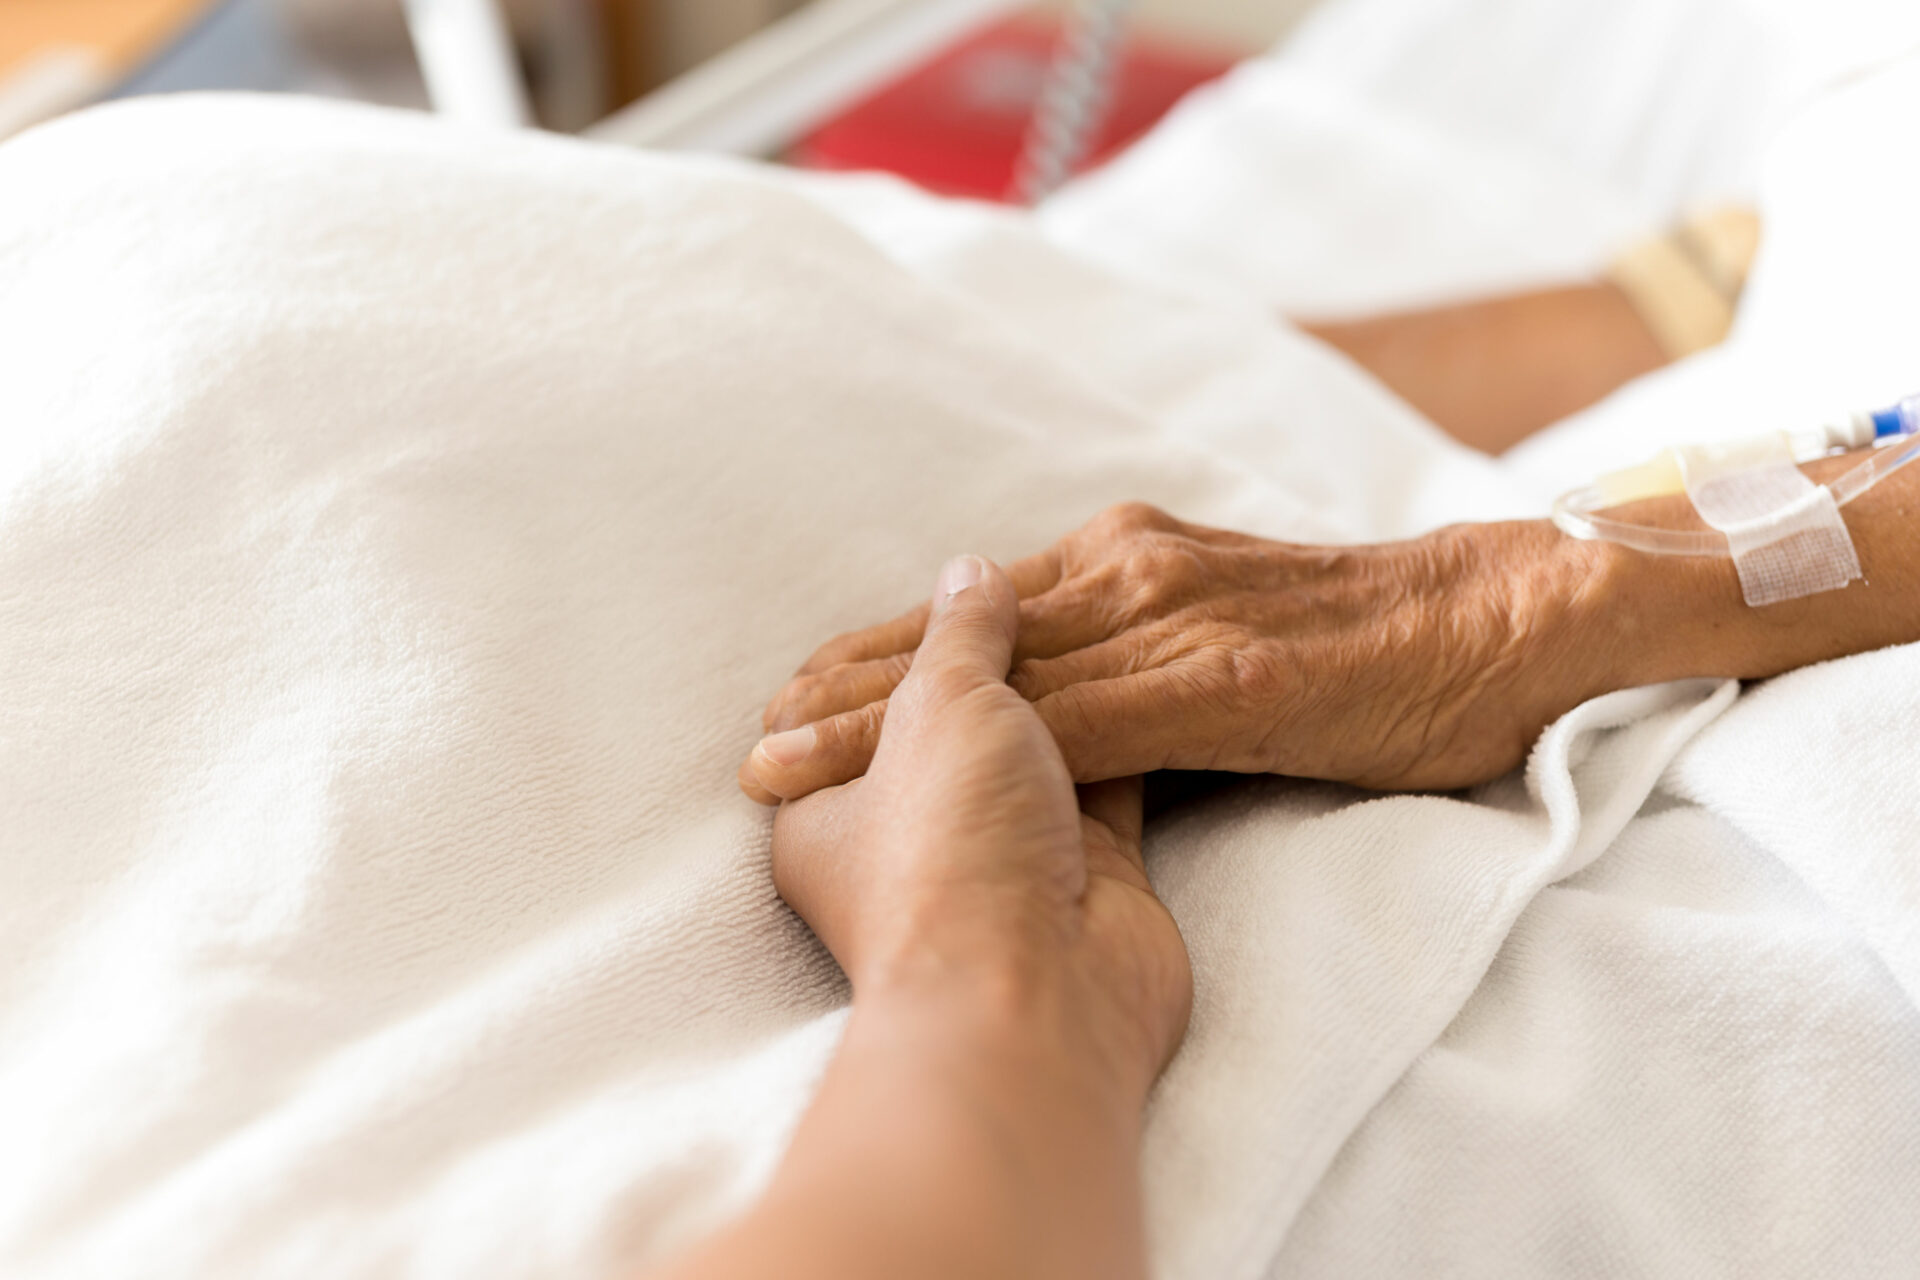 94498799 - son holding father is hand with saline intravenous in the hospital room